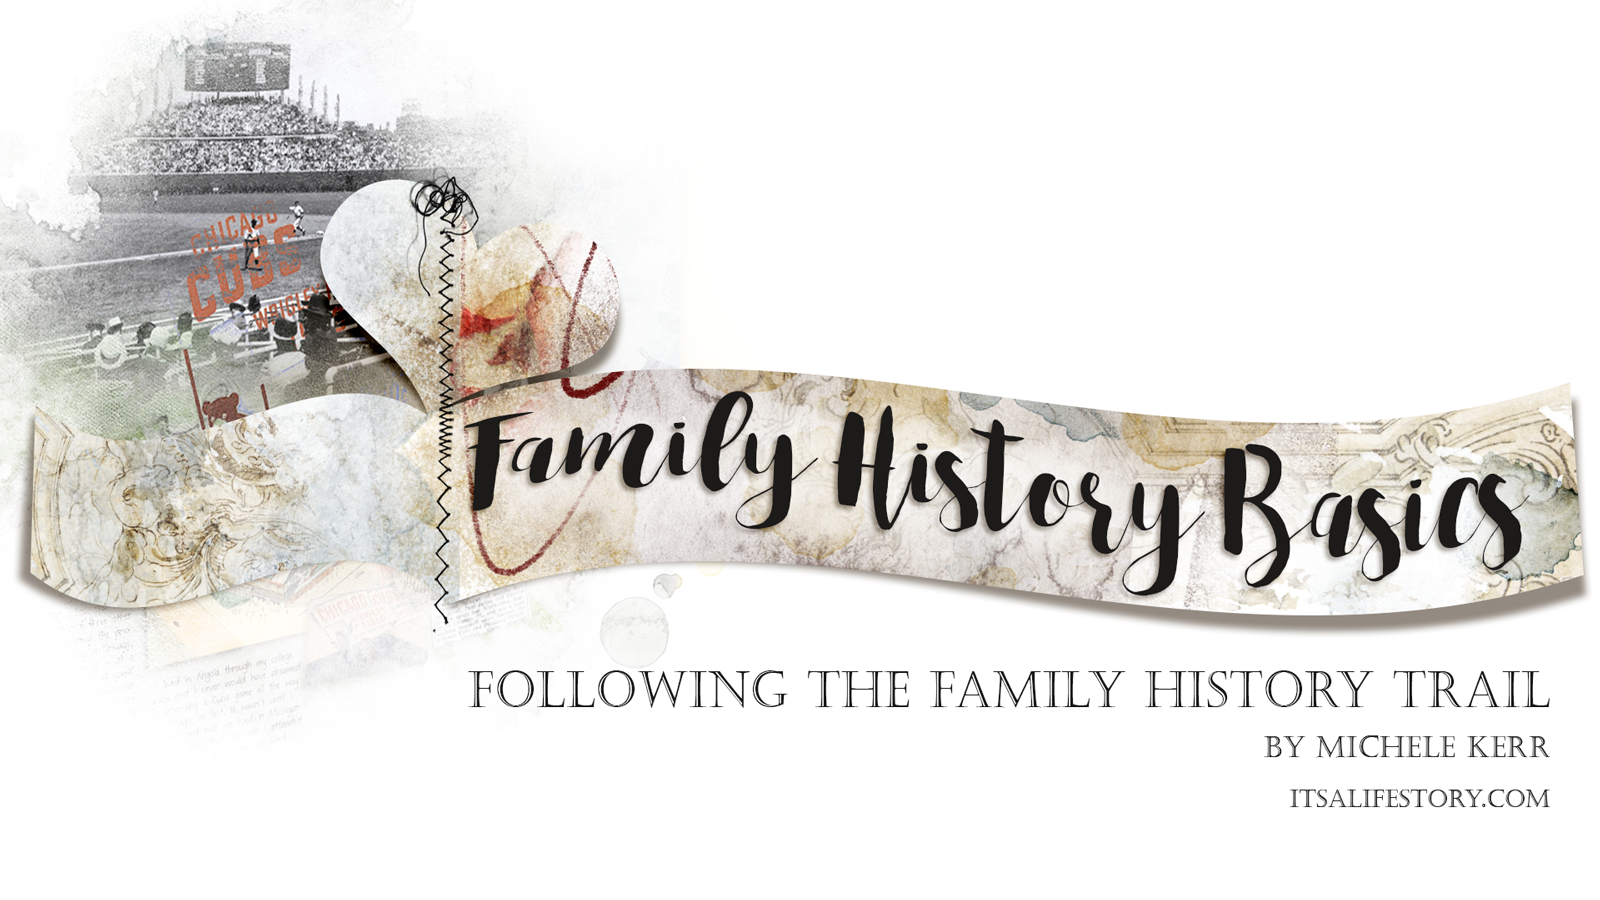 ItsALifeStory.com _ FAMILY HISTORY BASICS - Following the Family History Trail